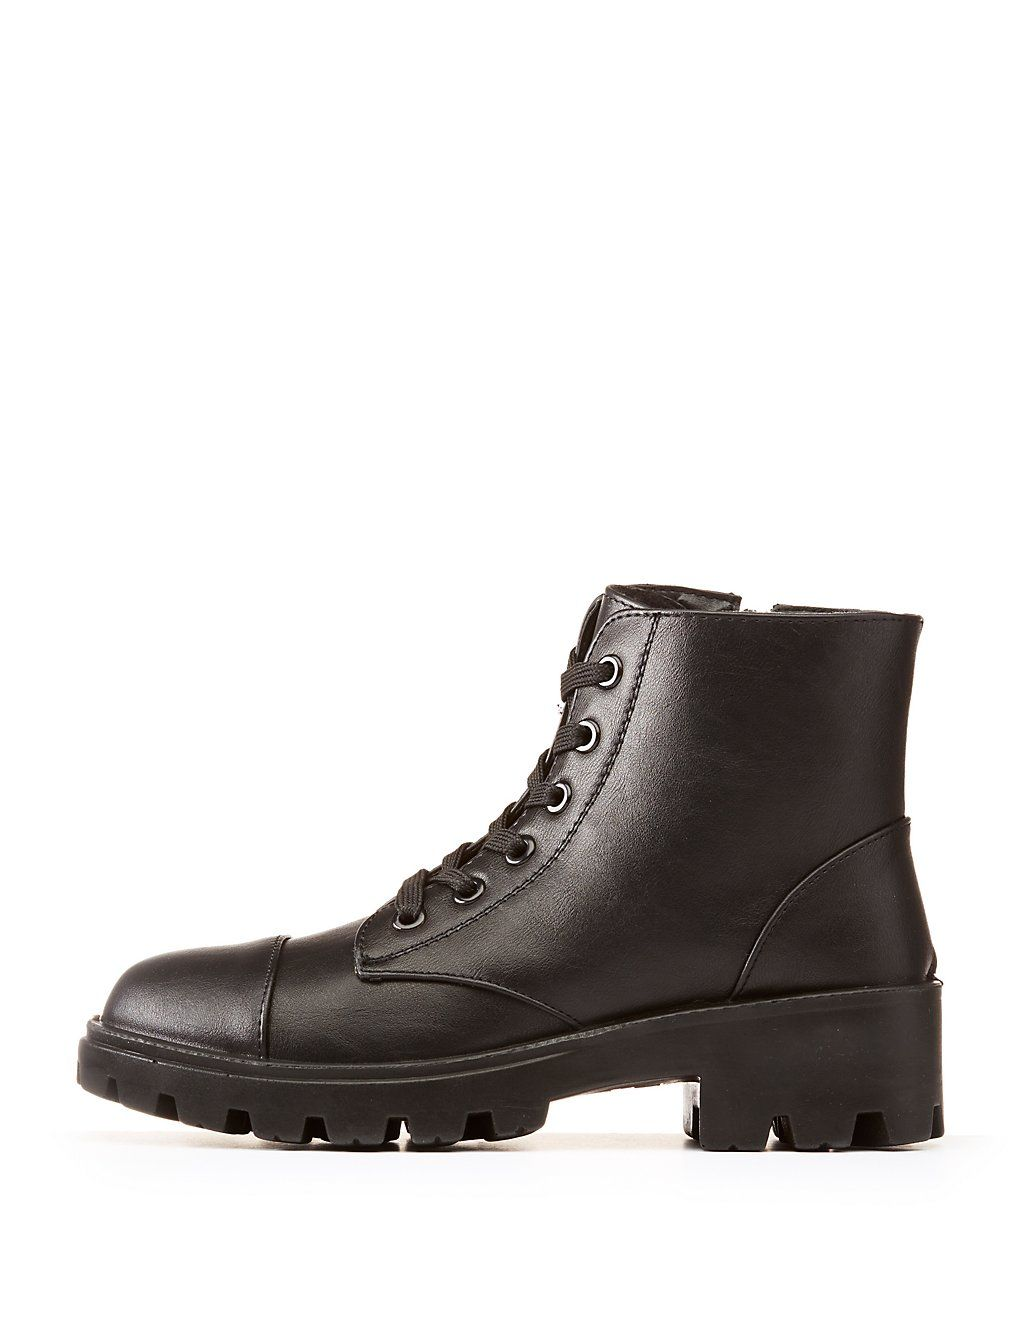 894ee8b7b10 Bamboo Lace-Up Combat Boots | Style | Combat boots, Lace up combat ...